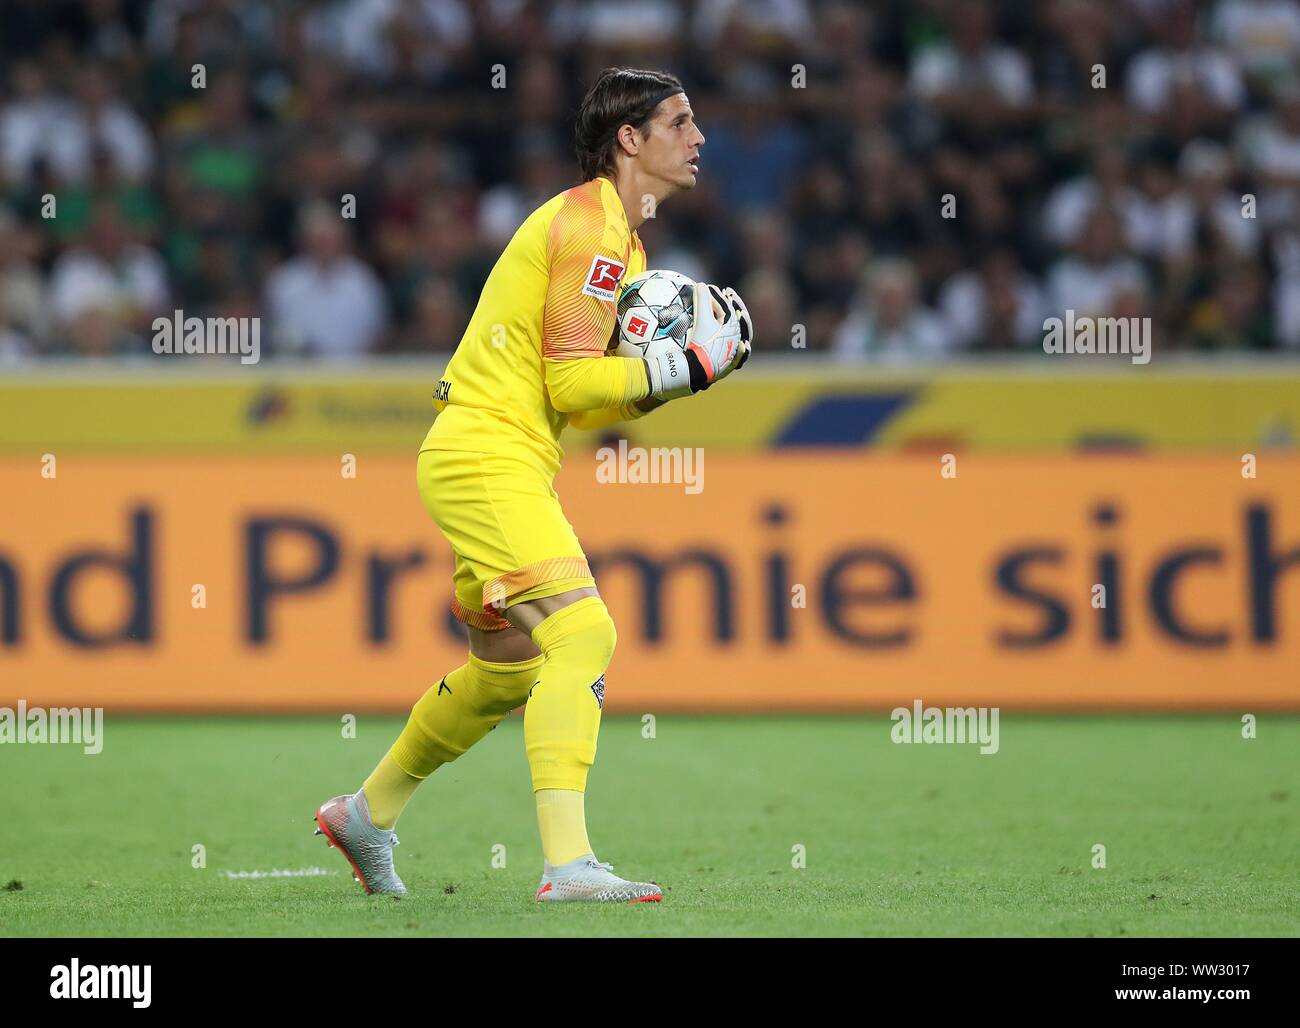 Page 2 Borussia Monchengladbach Goalkeeper High Resolution Stock Photography And Images Alamy